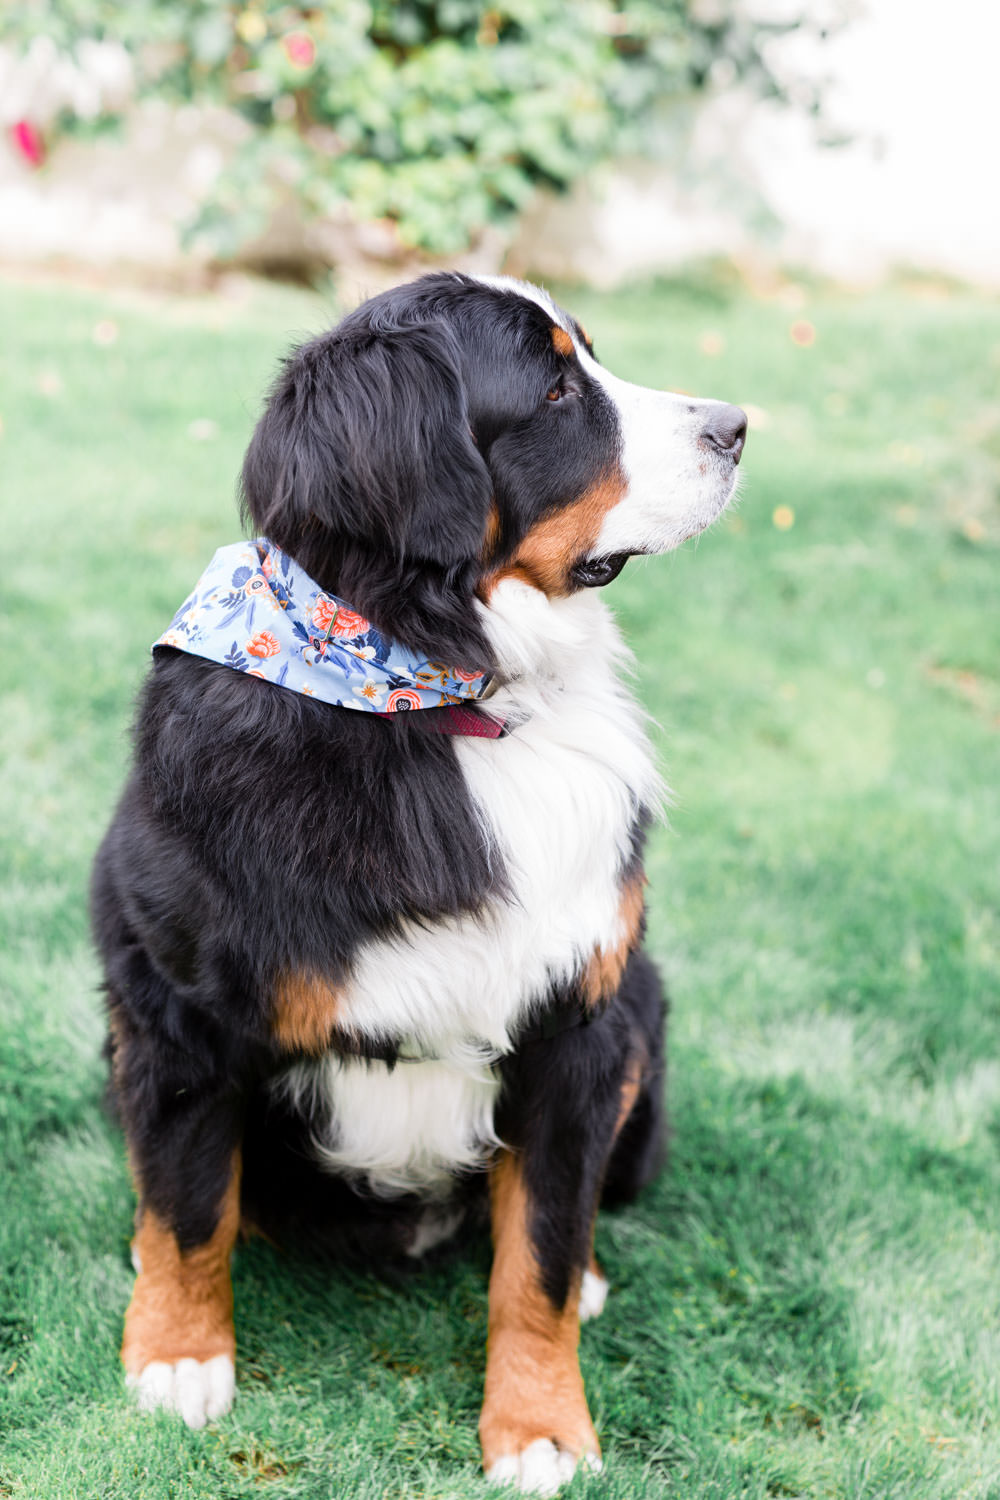 Dog wearing blue bandana for wedding, La Quinta Resort Wedding in Palm Springs, Cavin Elizabeth Photography